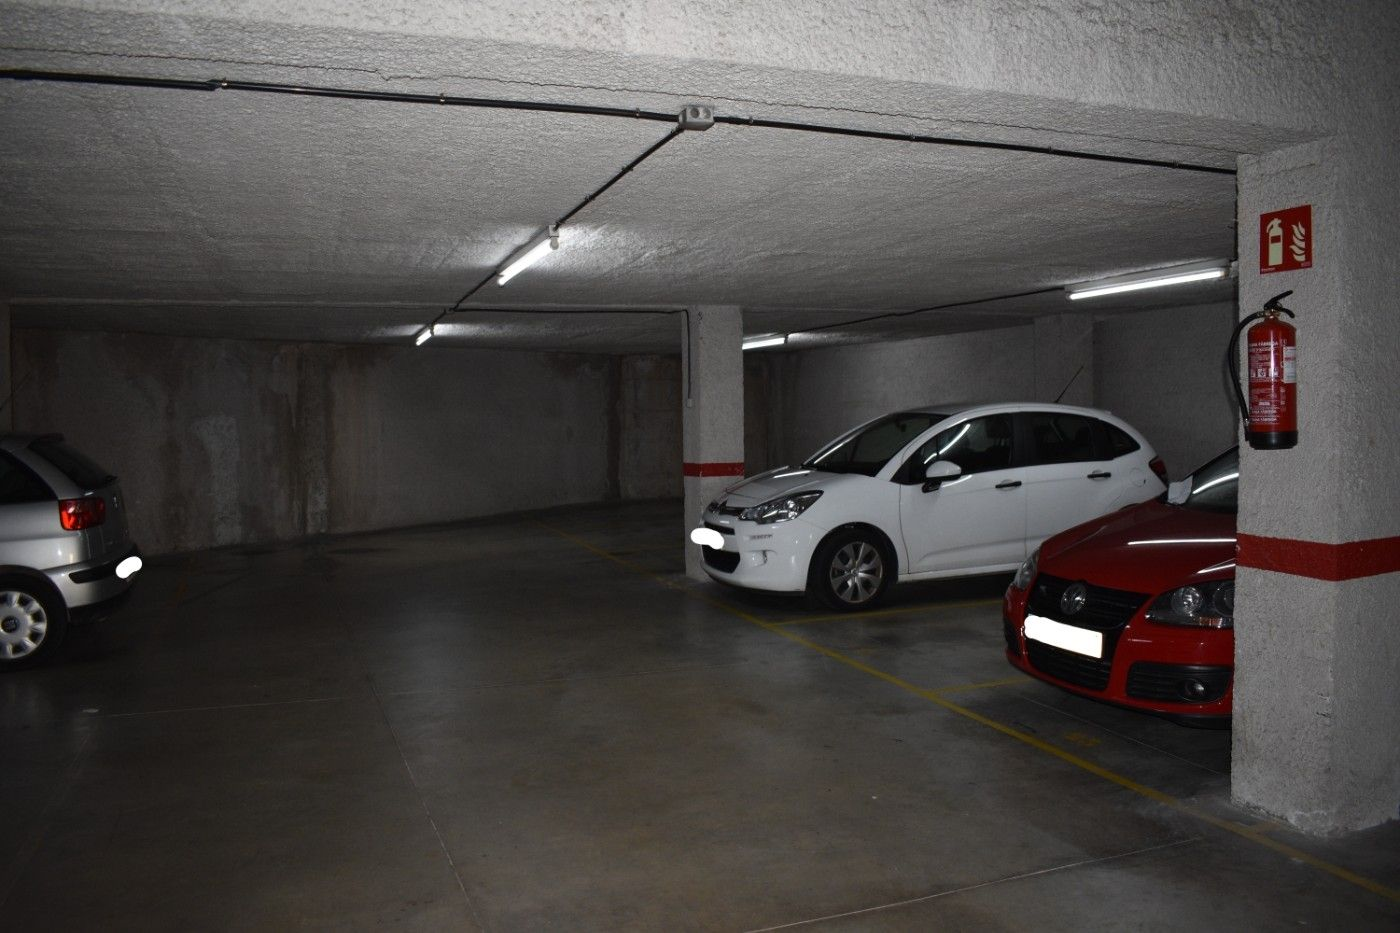 Parking coche  Carrer pau claris. Plazas de parking en venta.